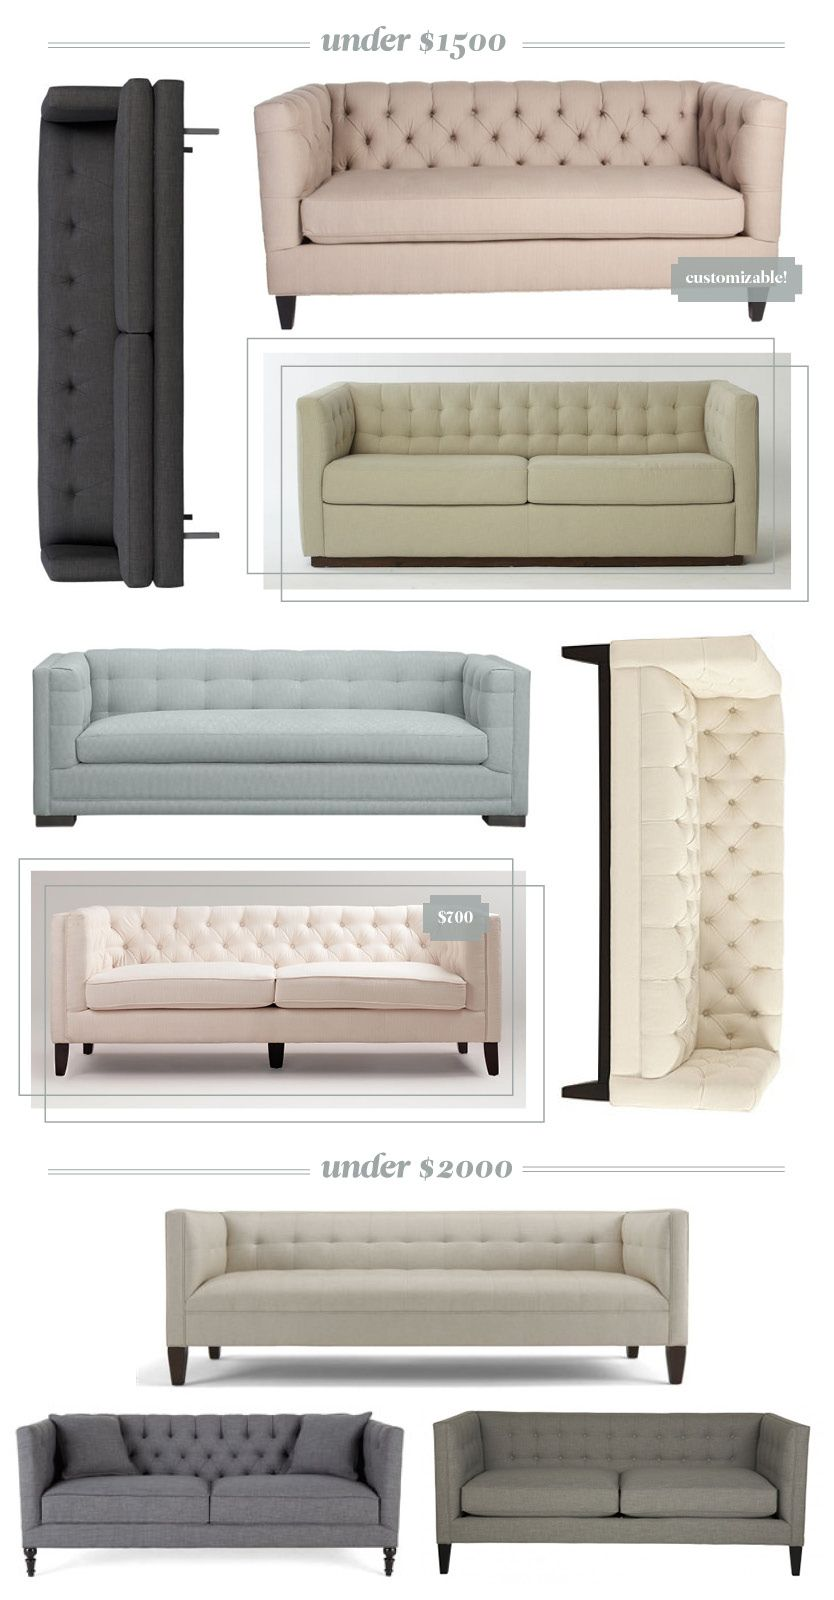 Affordable Tufted Tuxedo Sofas With Images Home Living Room Home Decor Sofa Styling